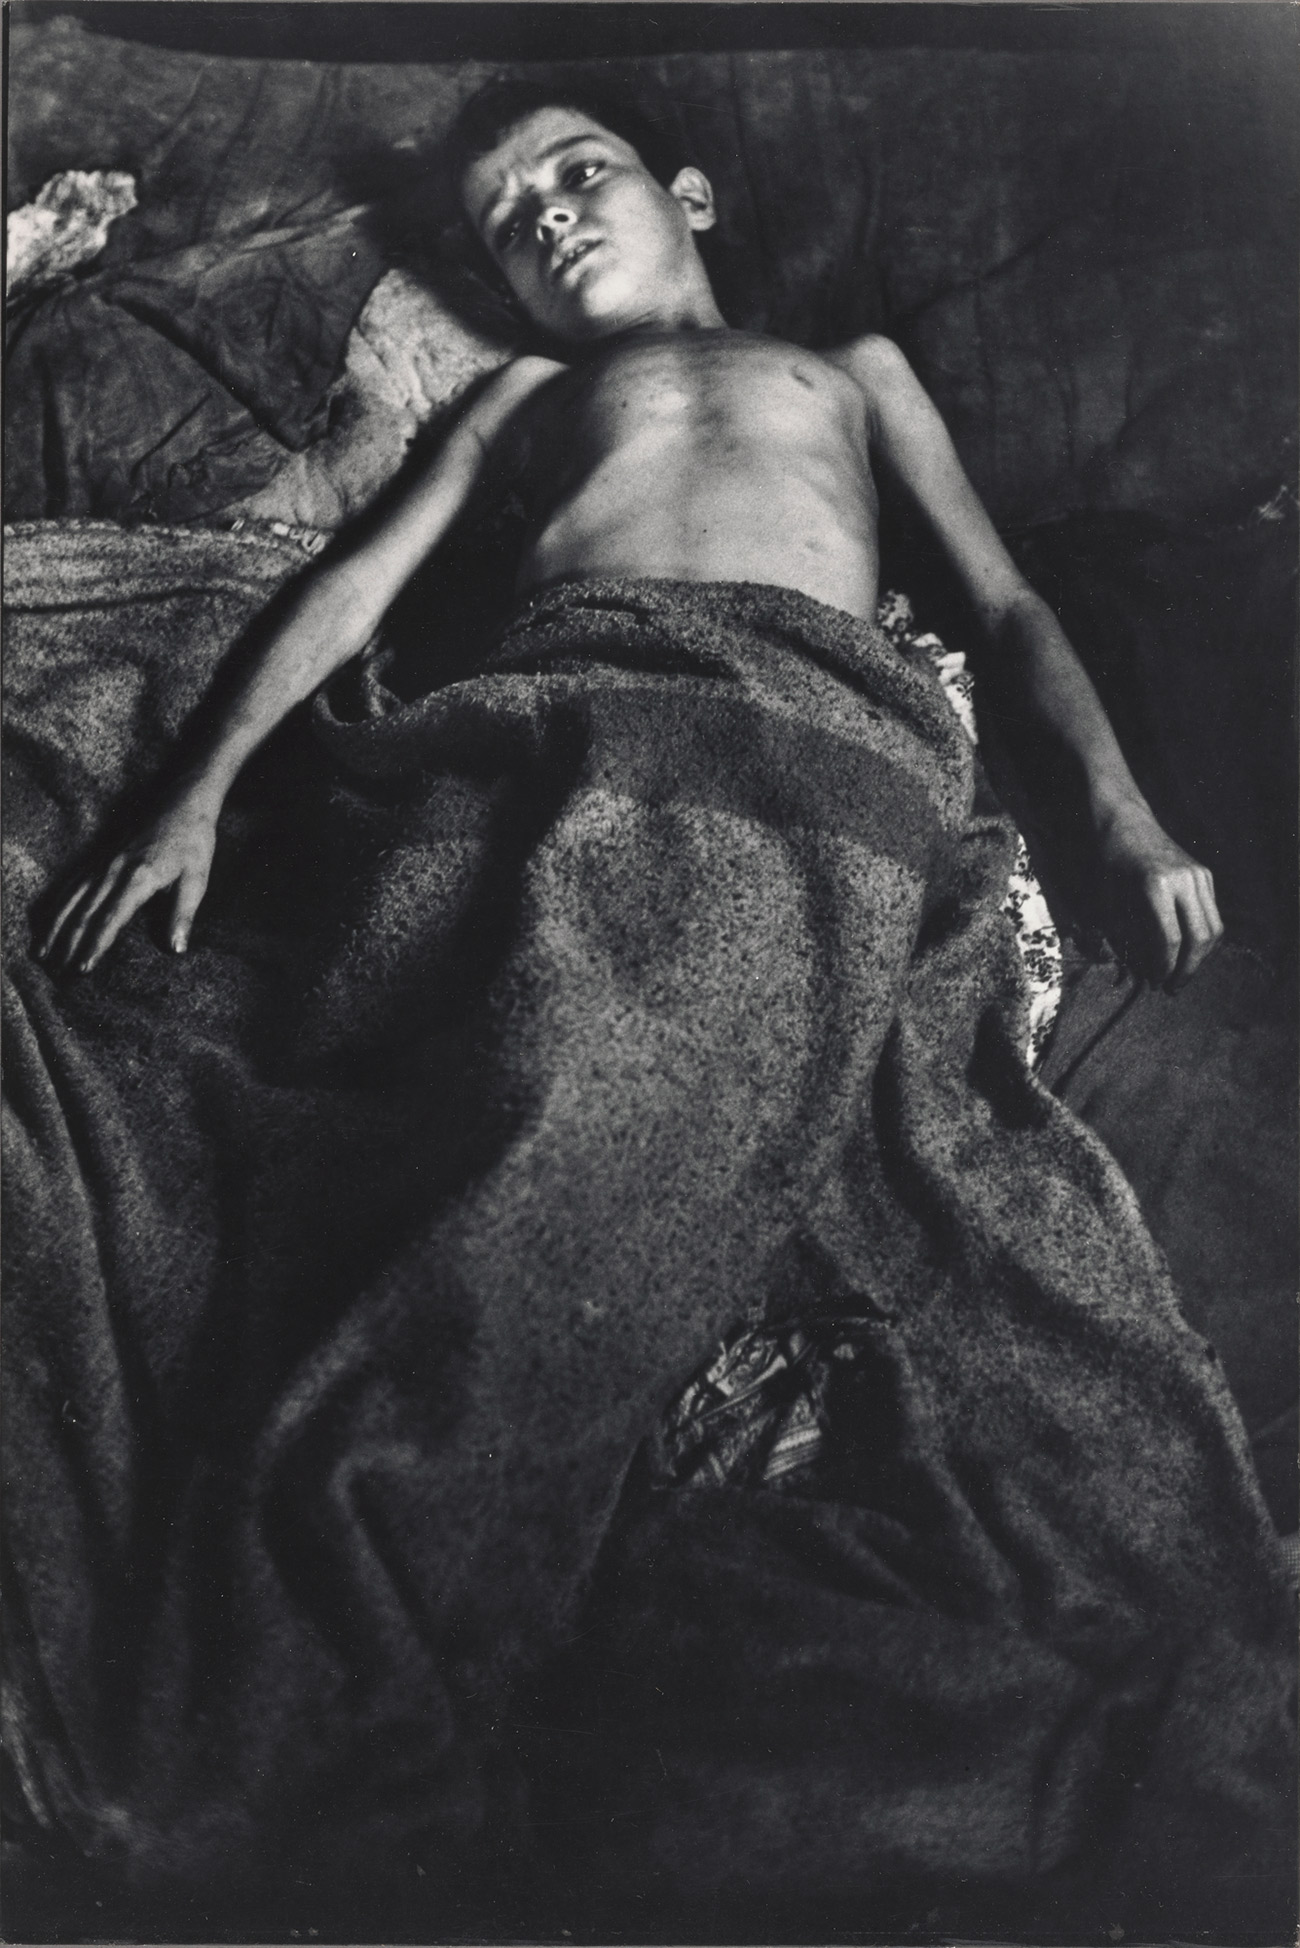 Black and white photograph of a thin boy lying on a bed or cot, with a blanket pulled up to his waist.